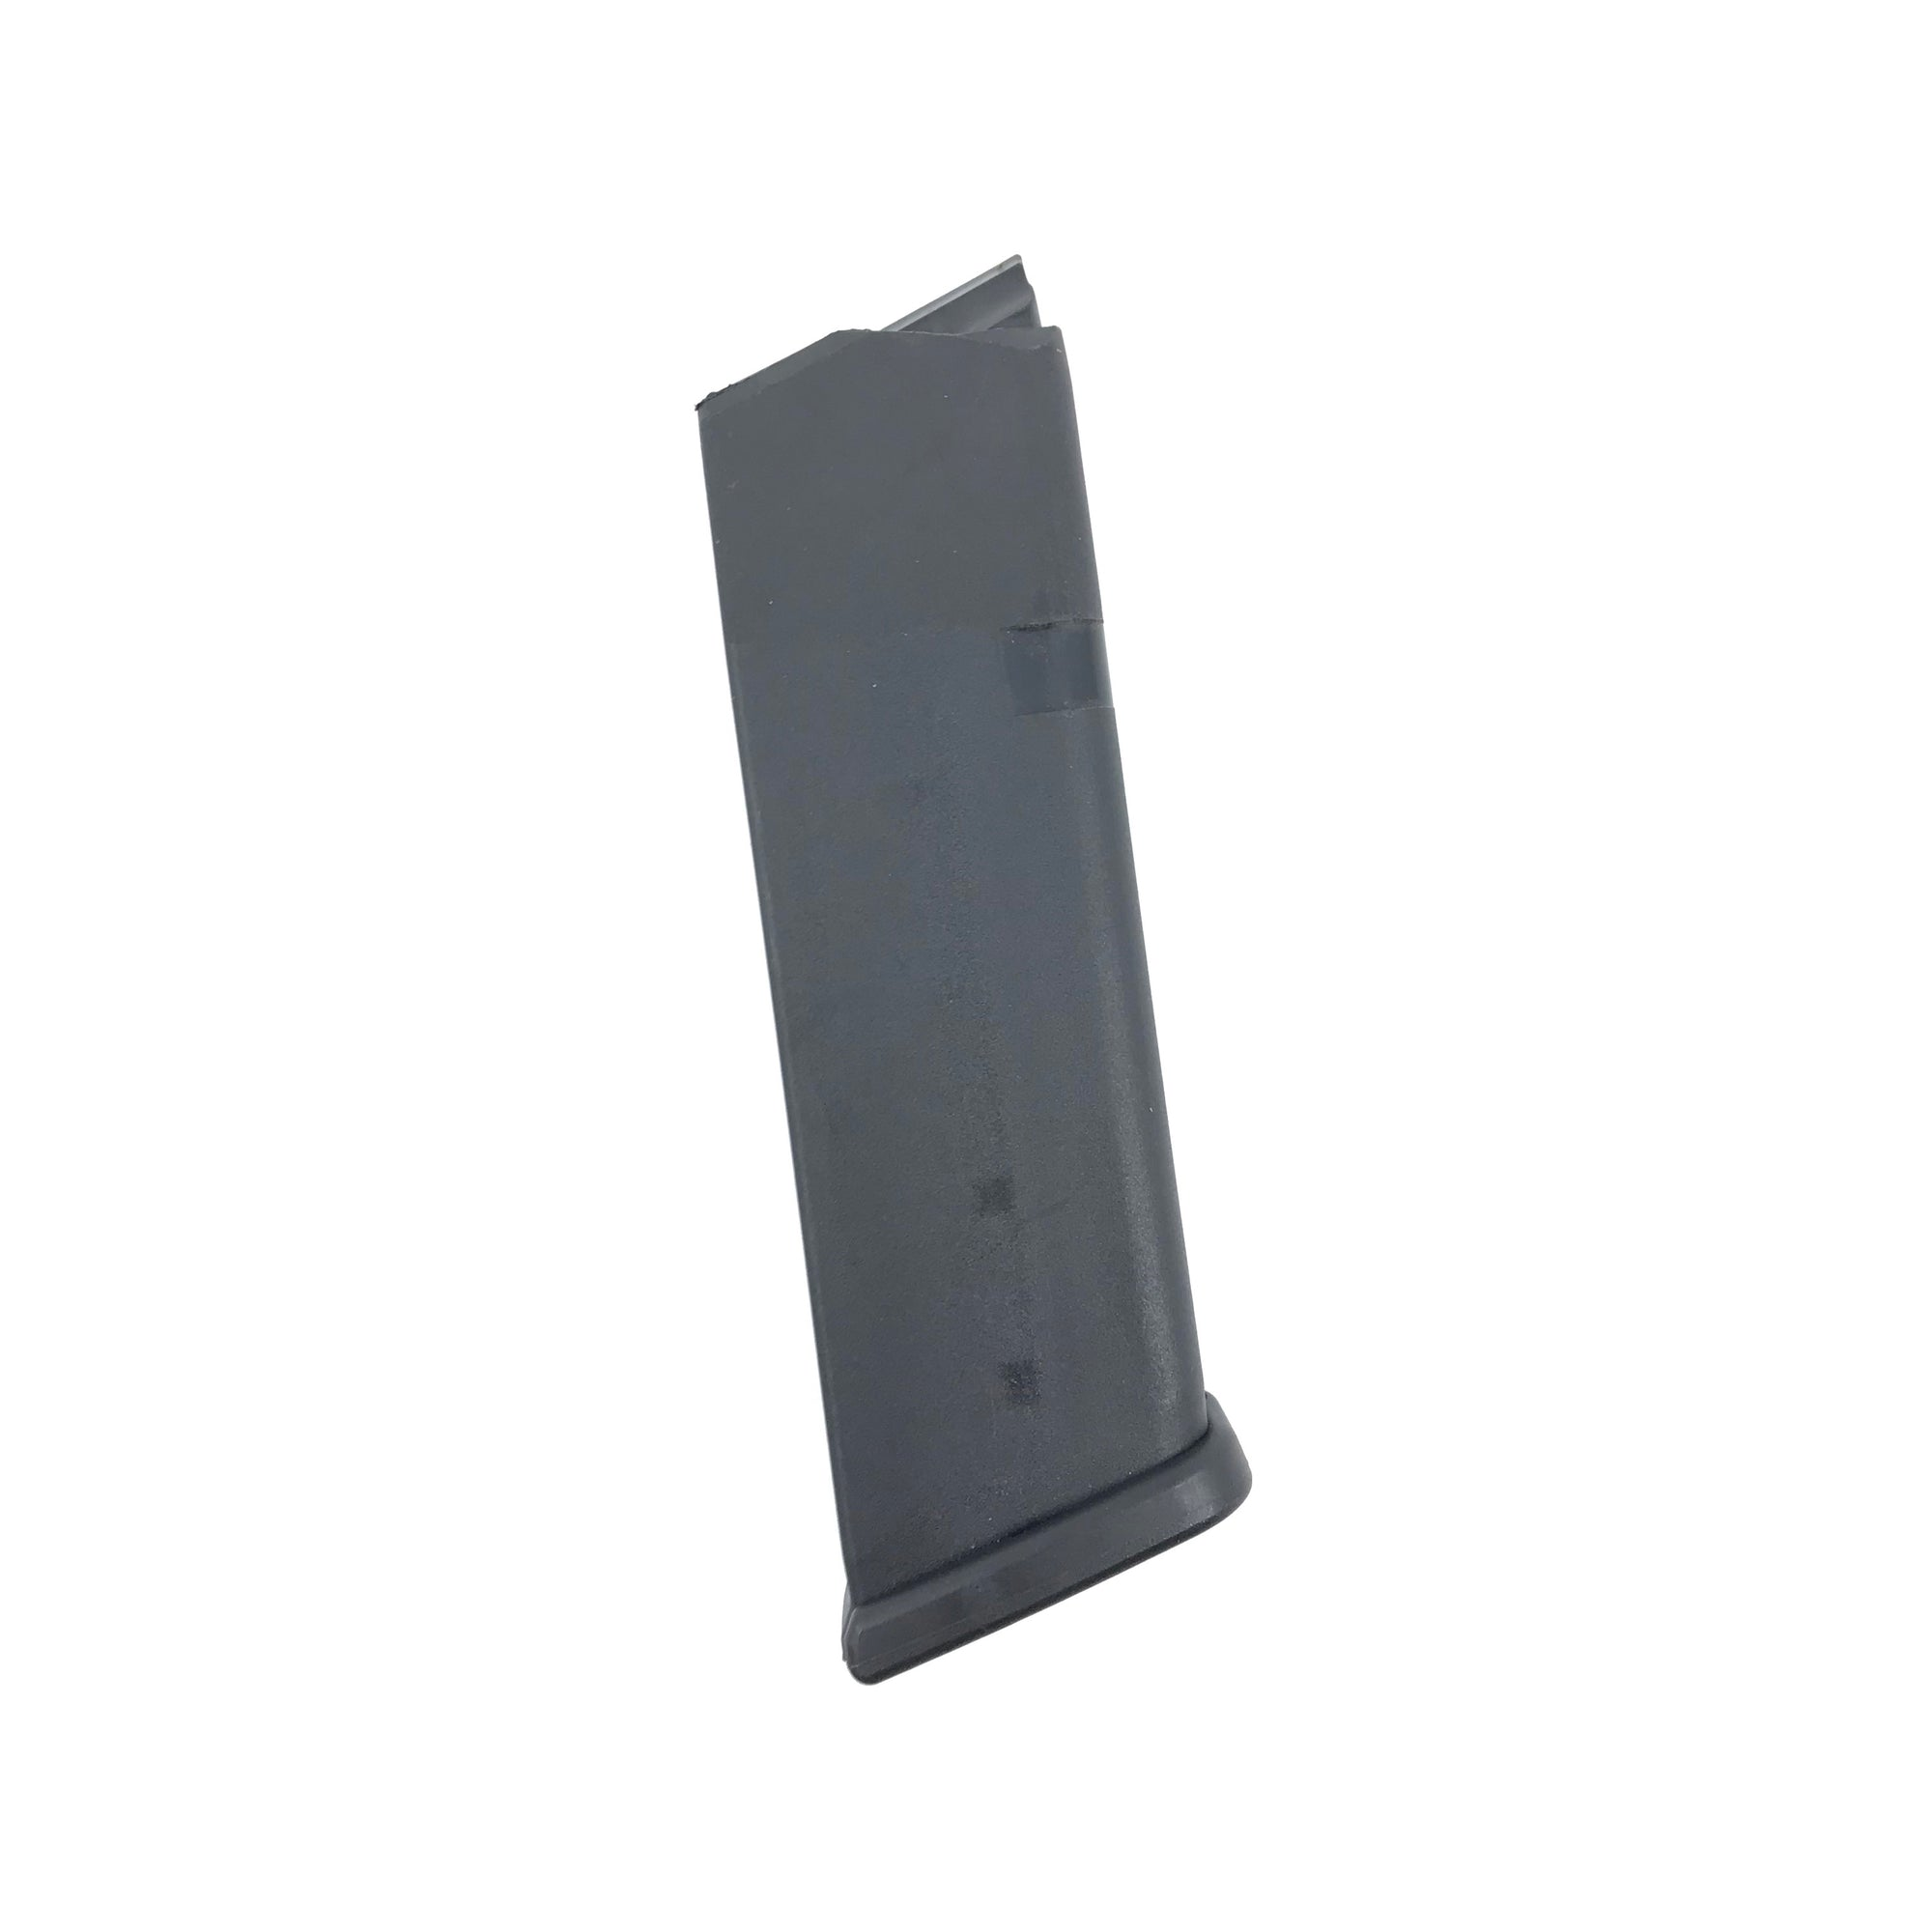 Glock Model 45 ACP Magazine 10rds